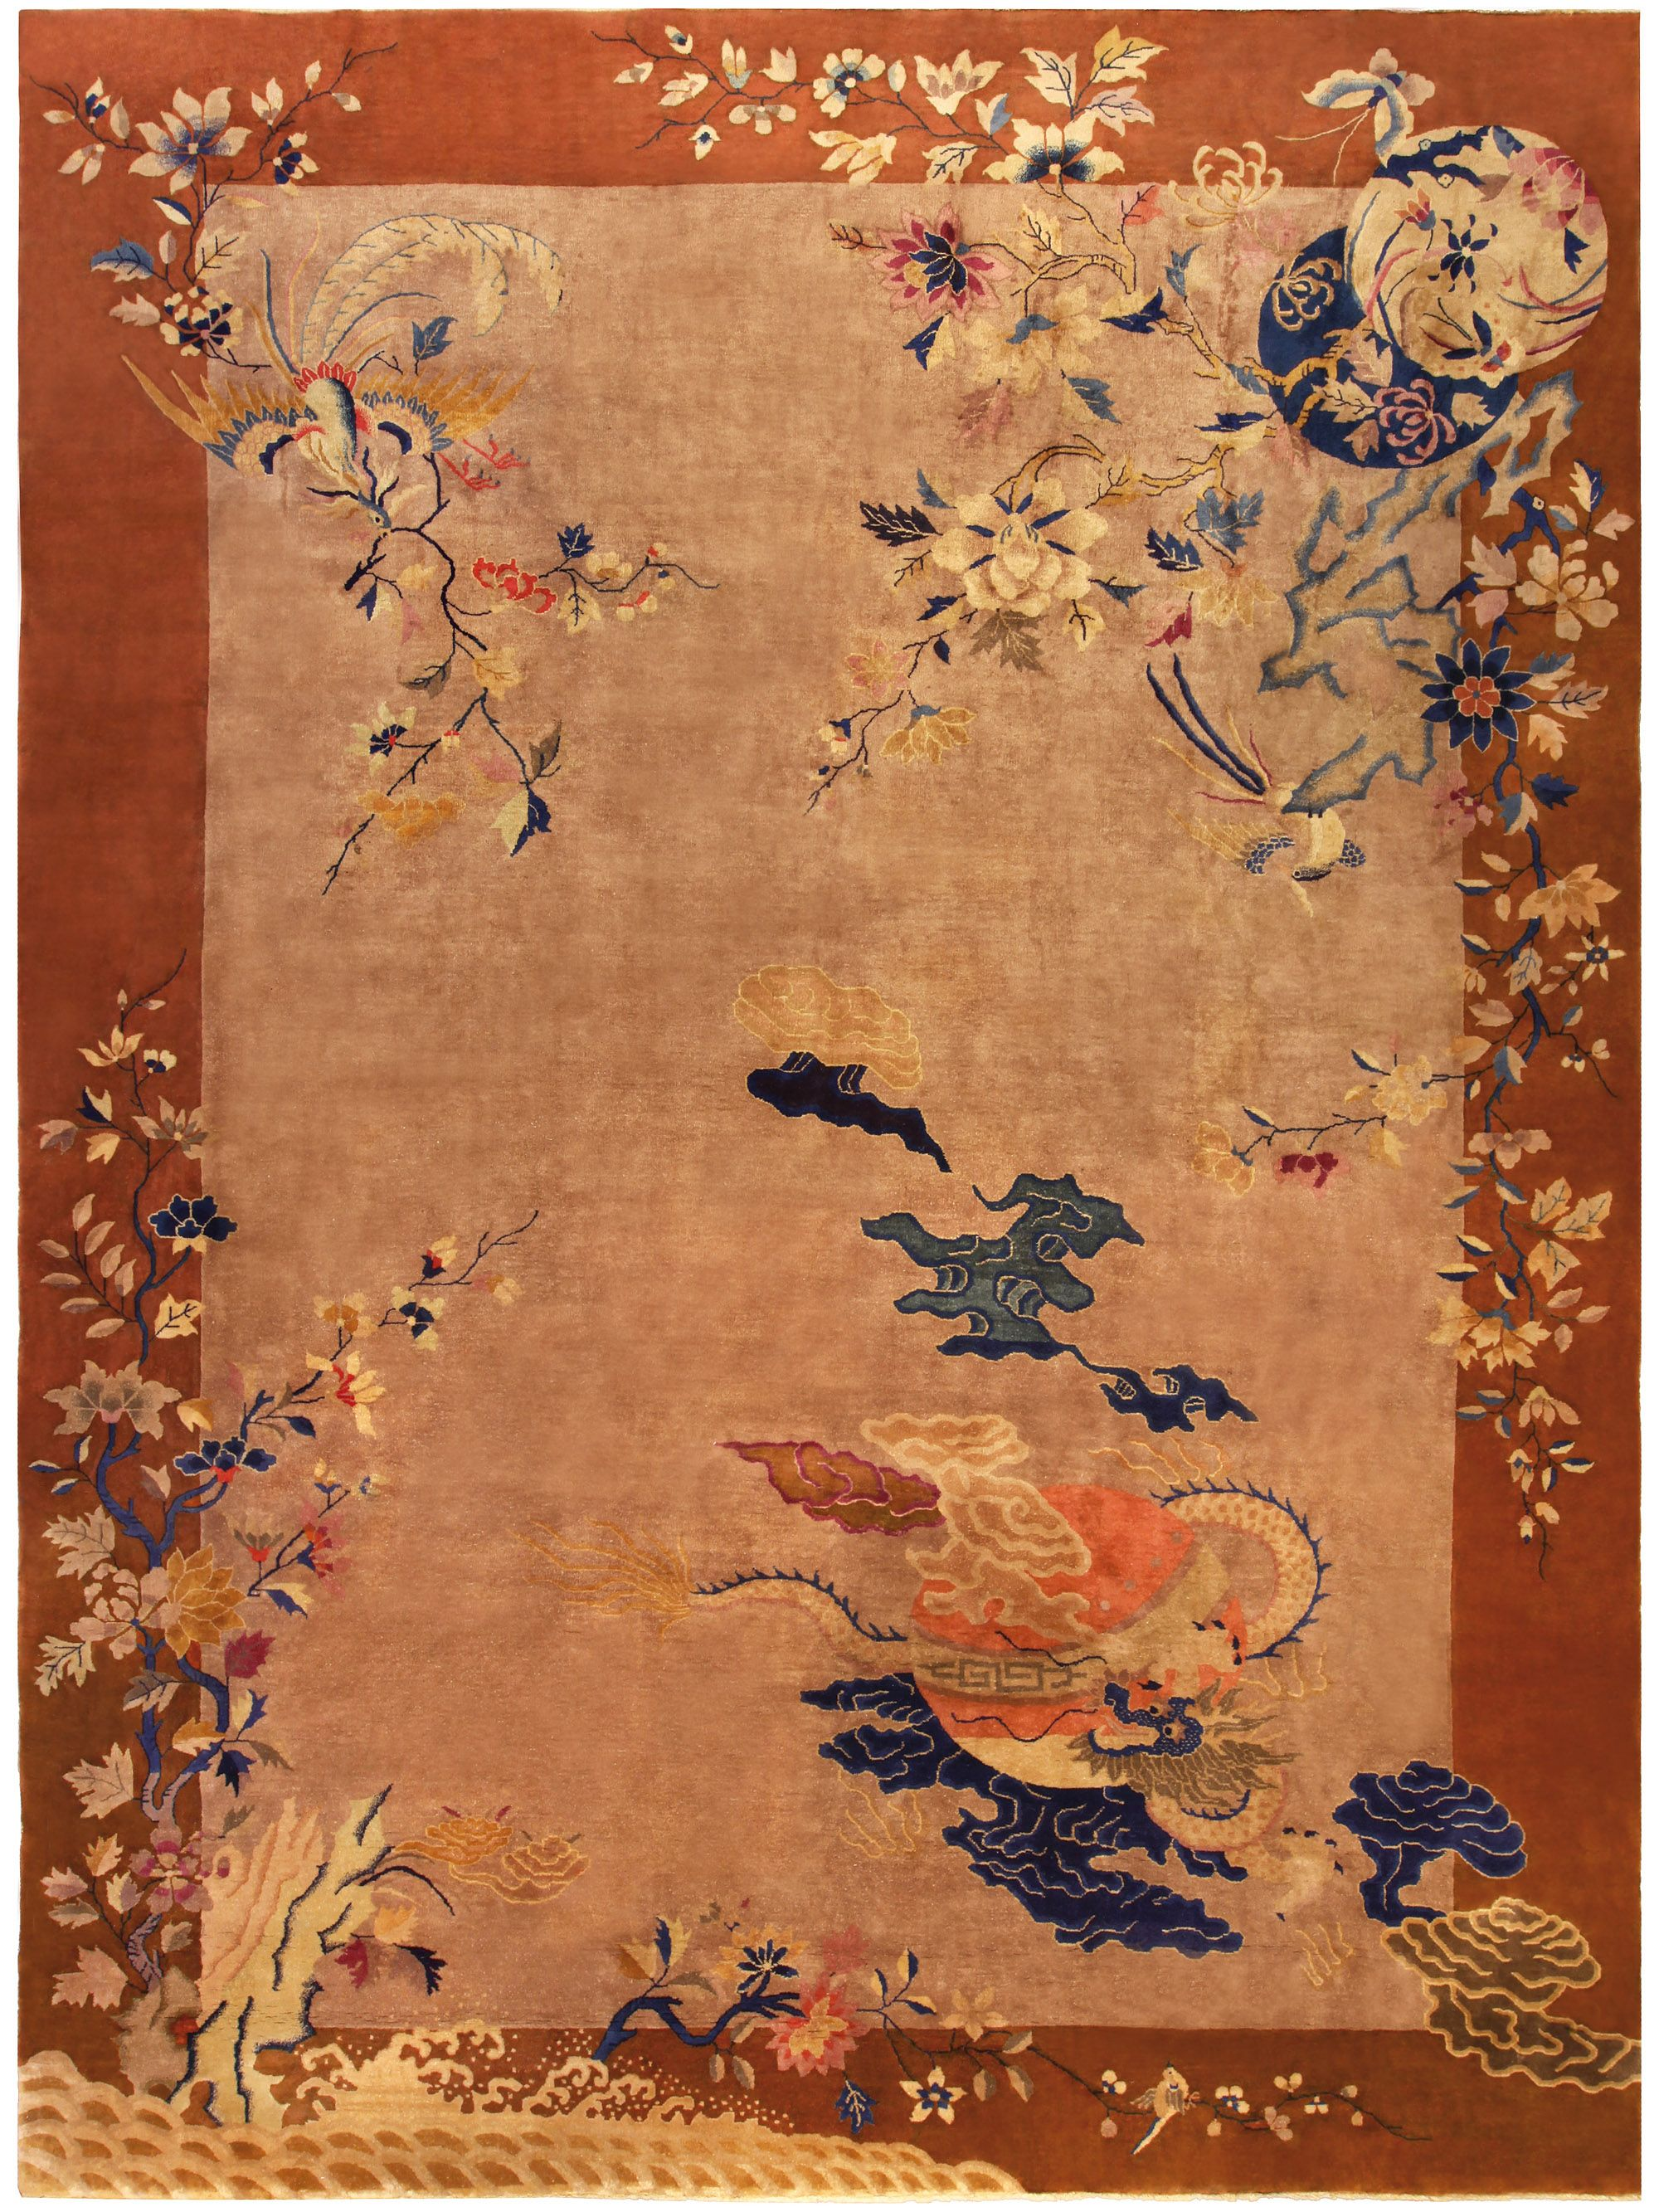 A Chinese Deco Rug Bb5193 By Doris Leslie Blau This Art